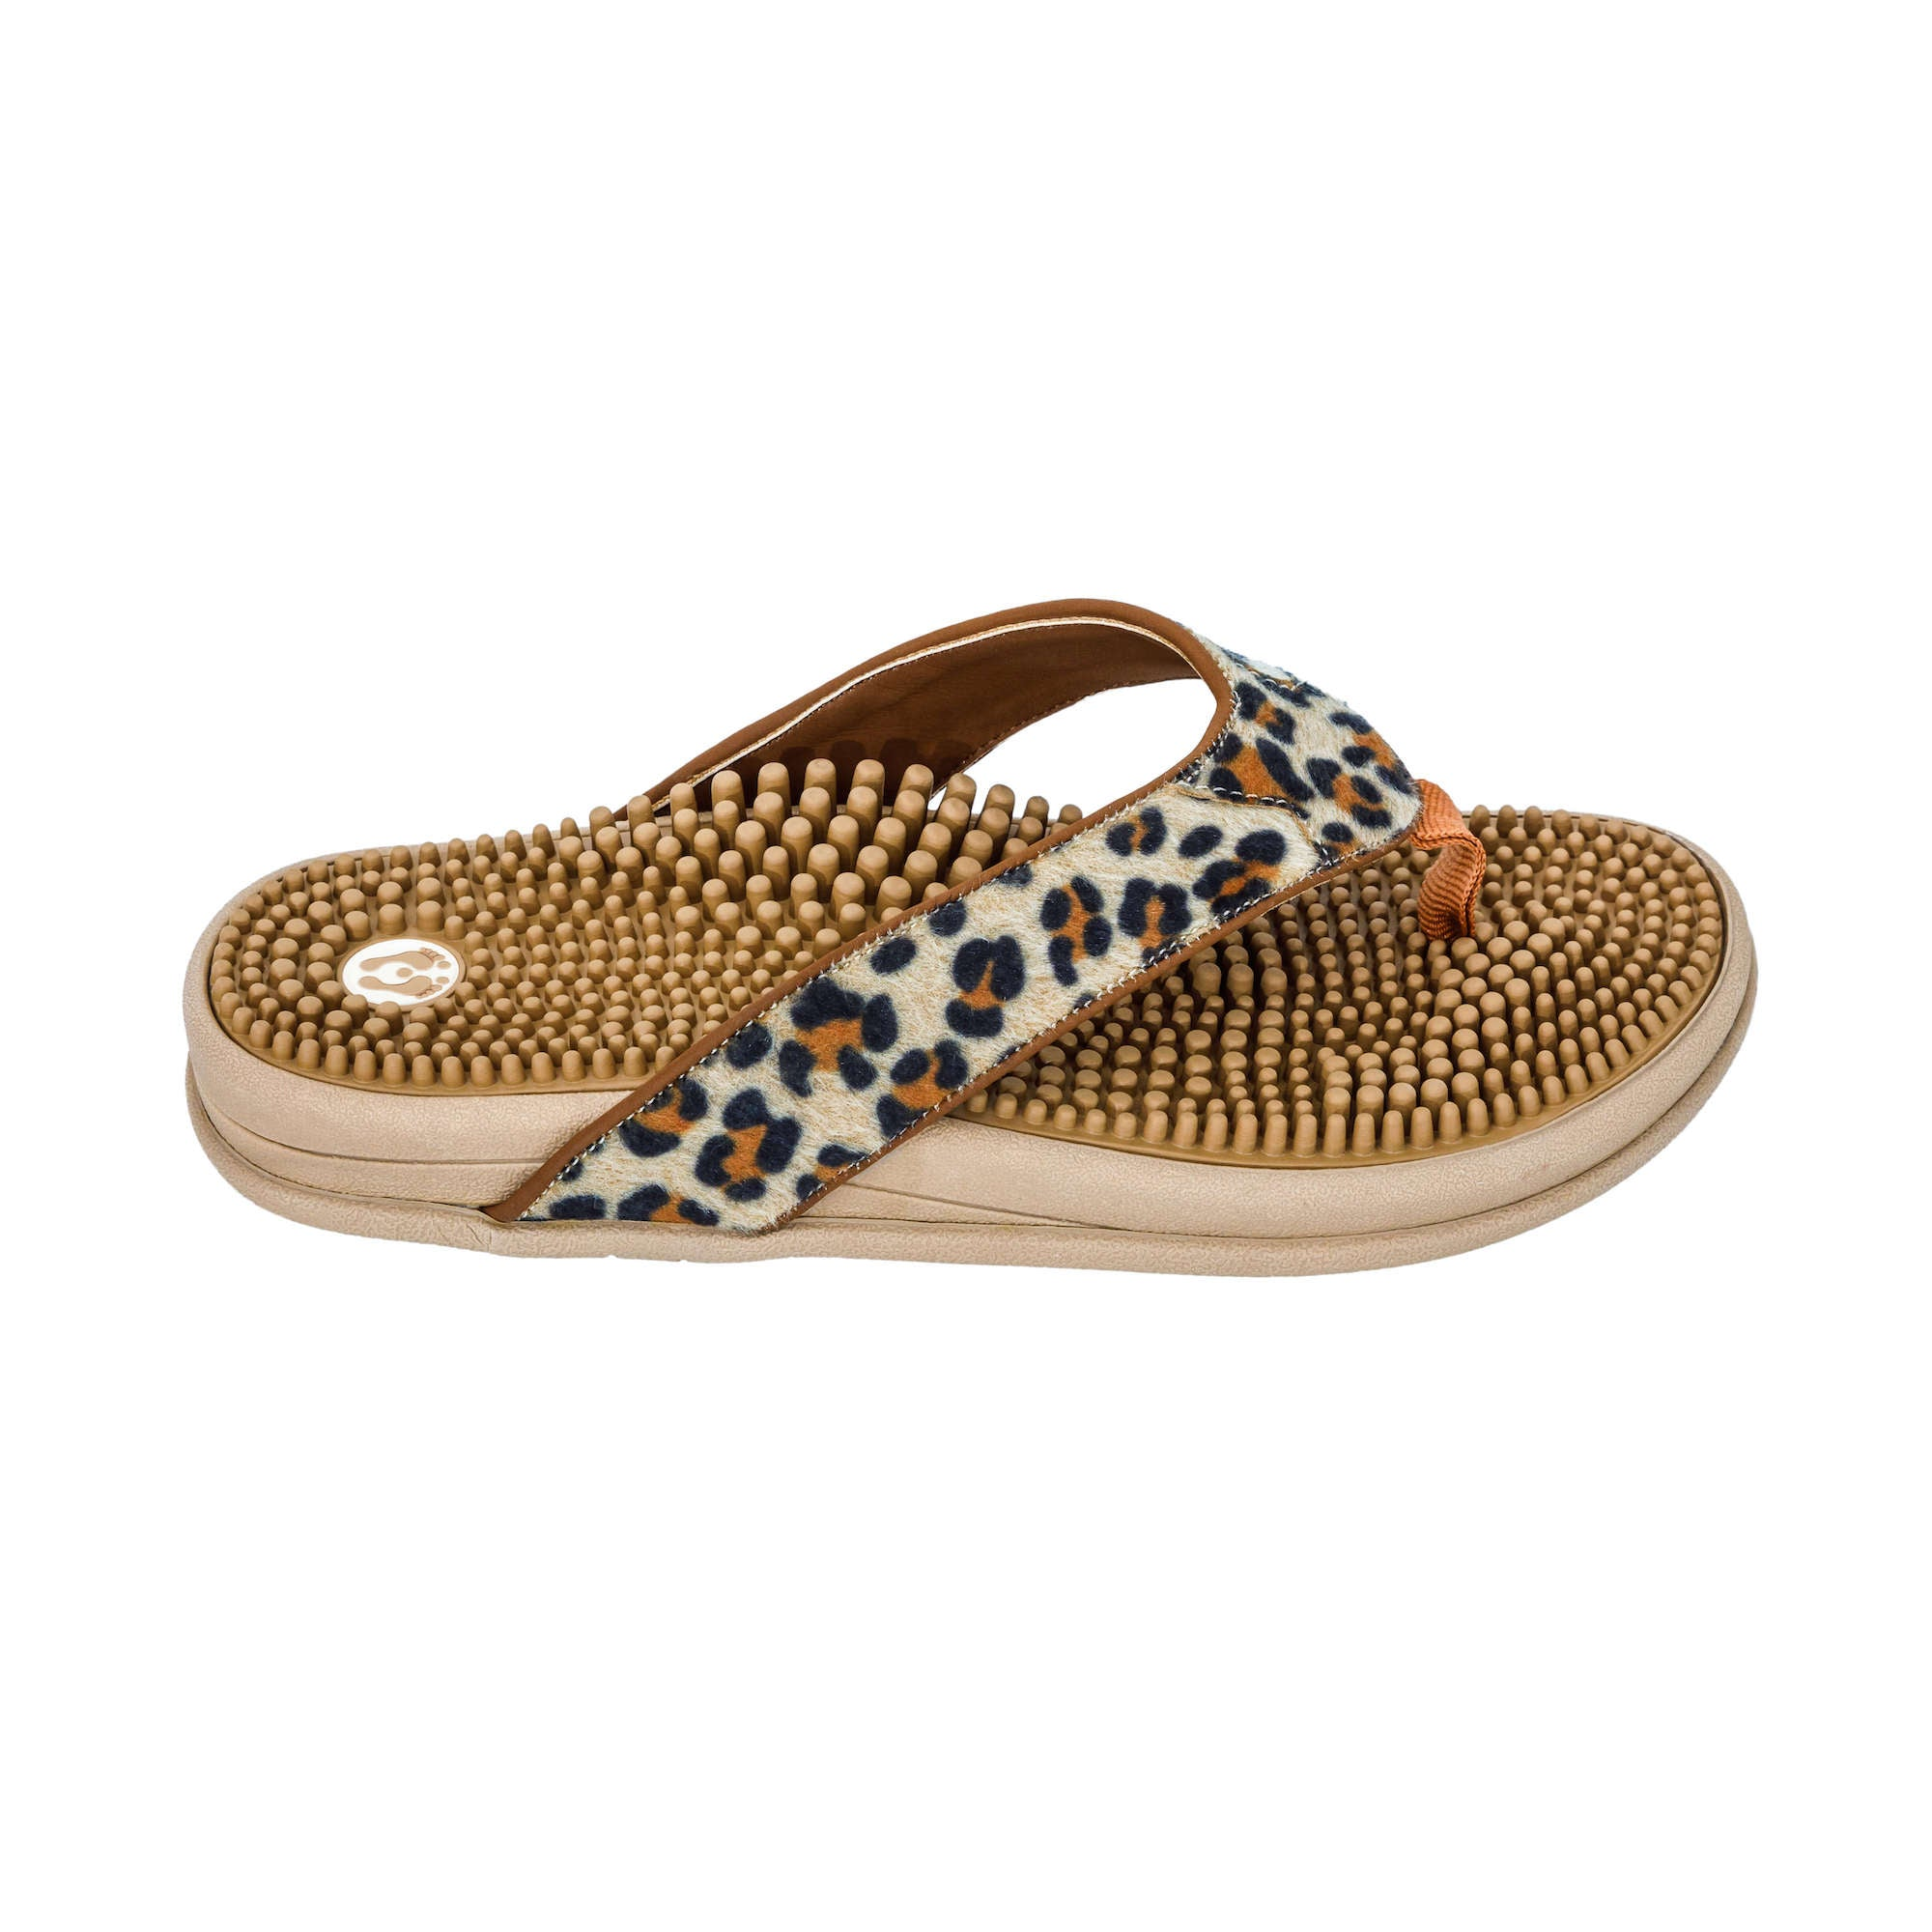 Ladies Reflexology Massage Flip Flops, Leopard